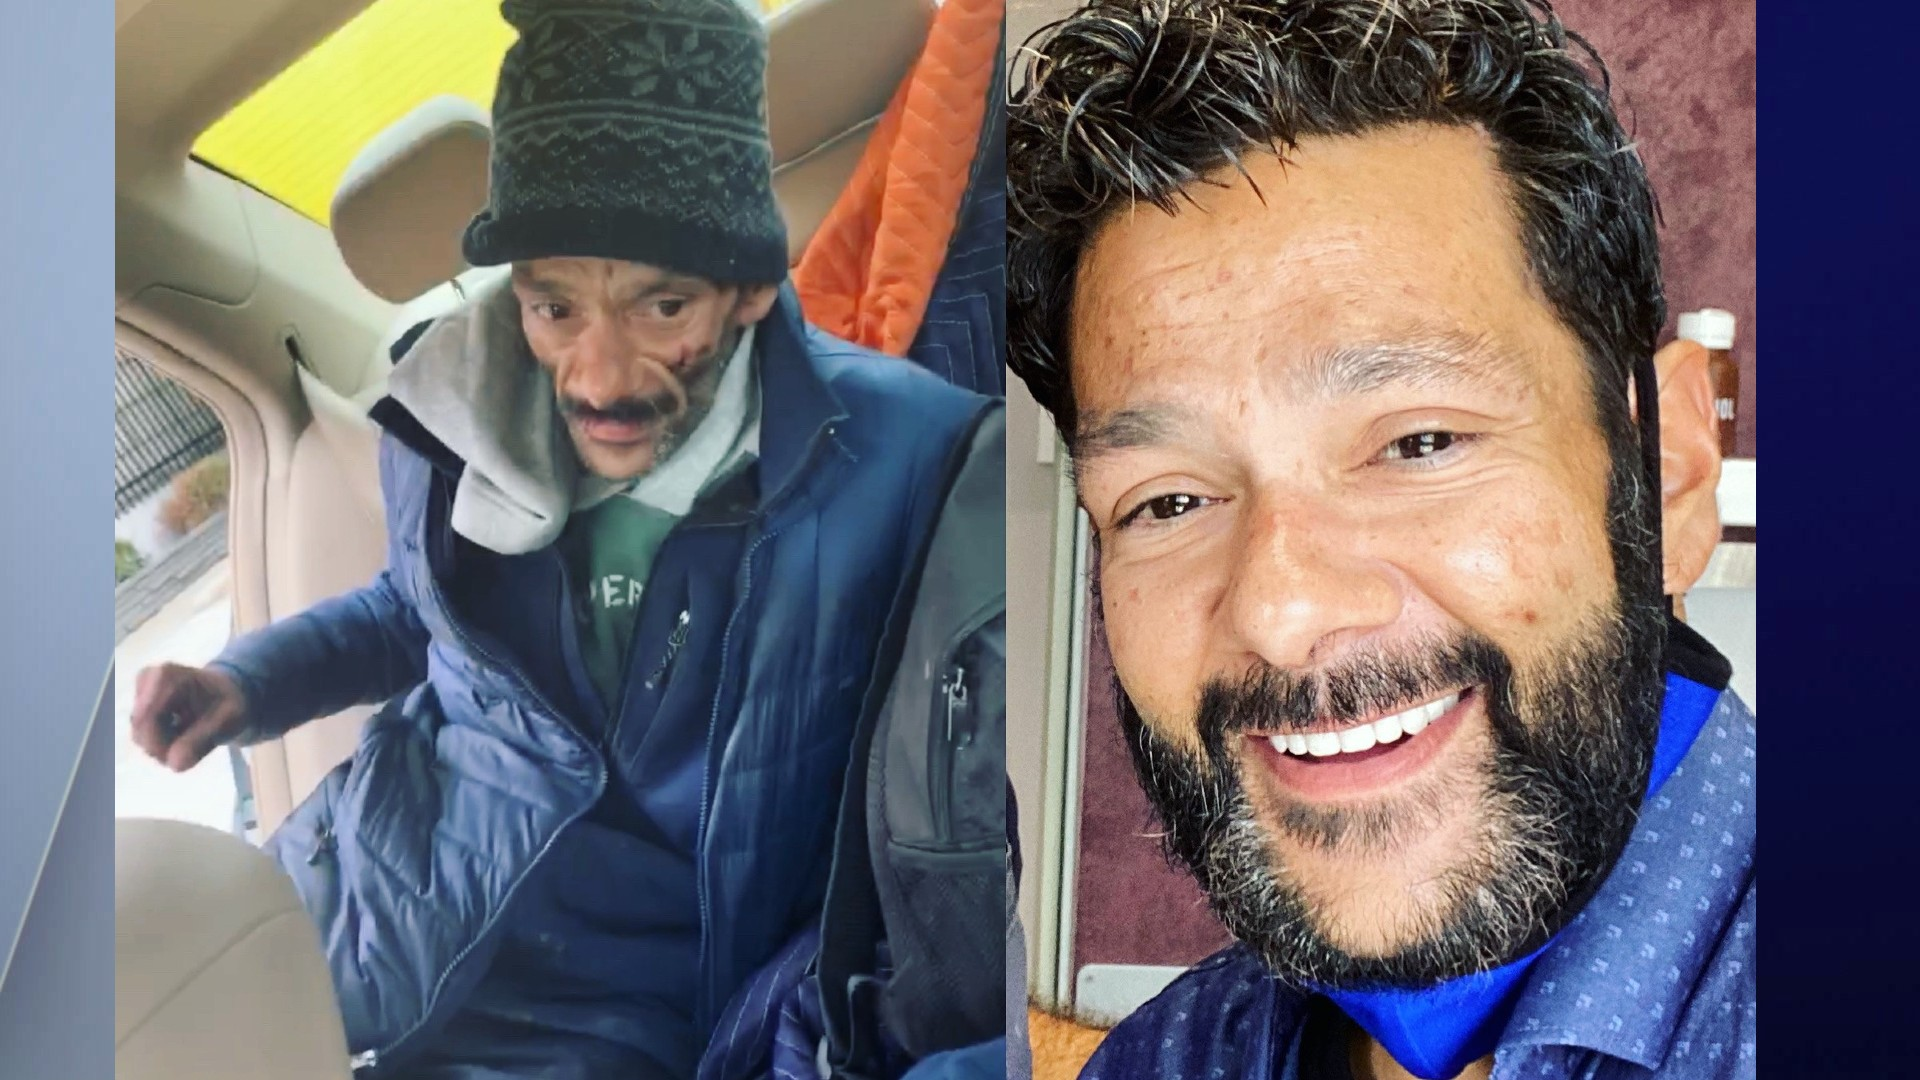 Weis Christmas Hours 2020 Mighty Ducks' star Shaun Weiss now 271 days sober after living on